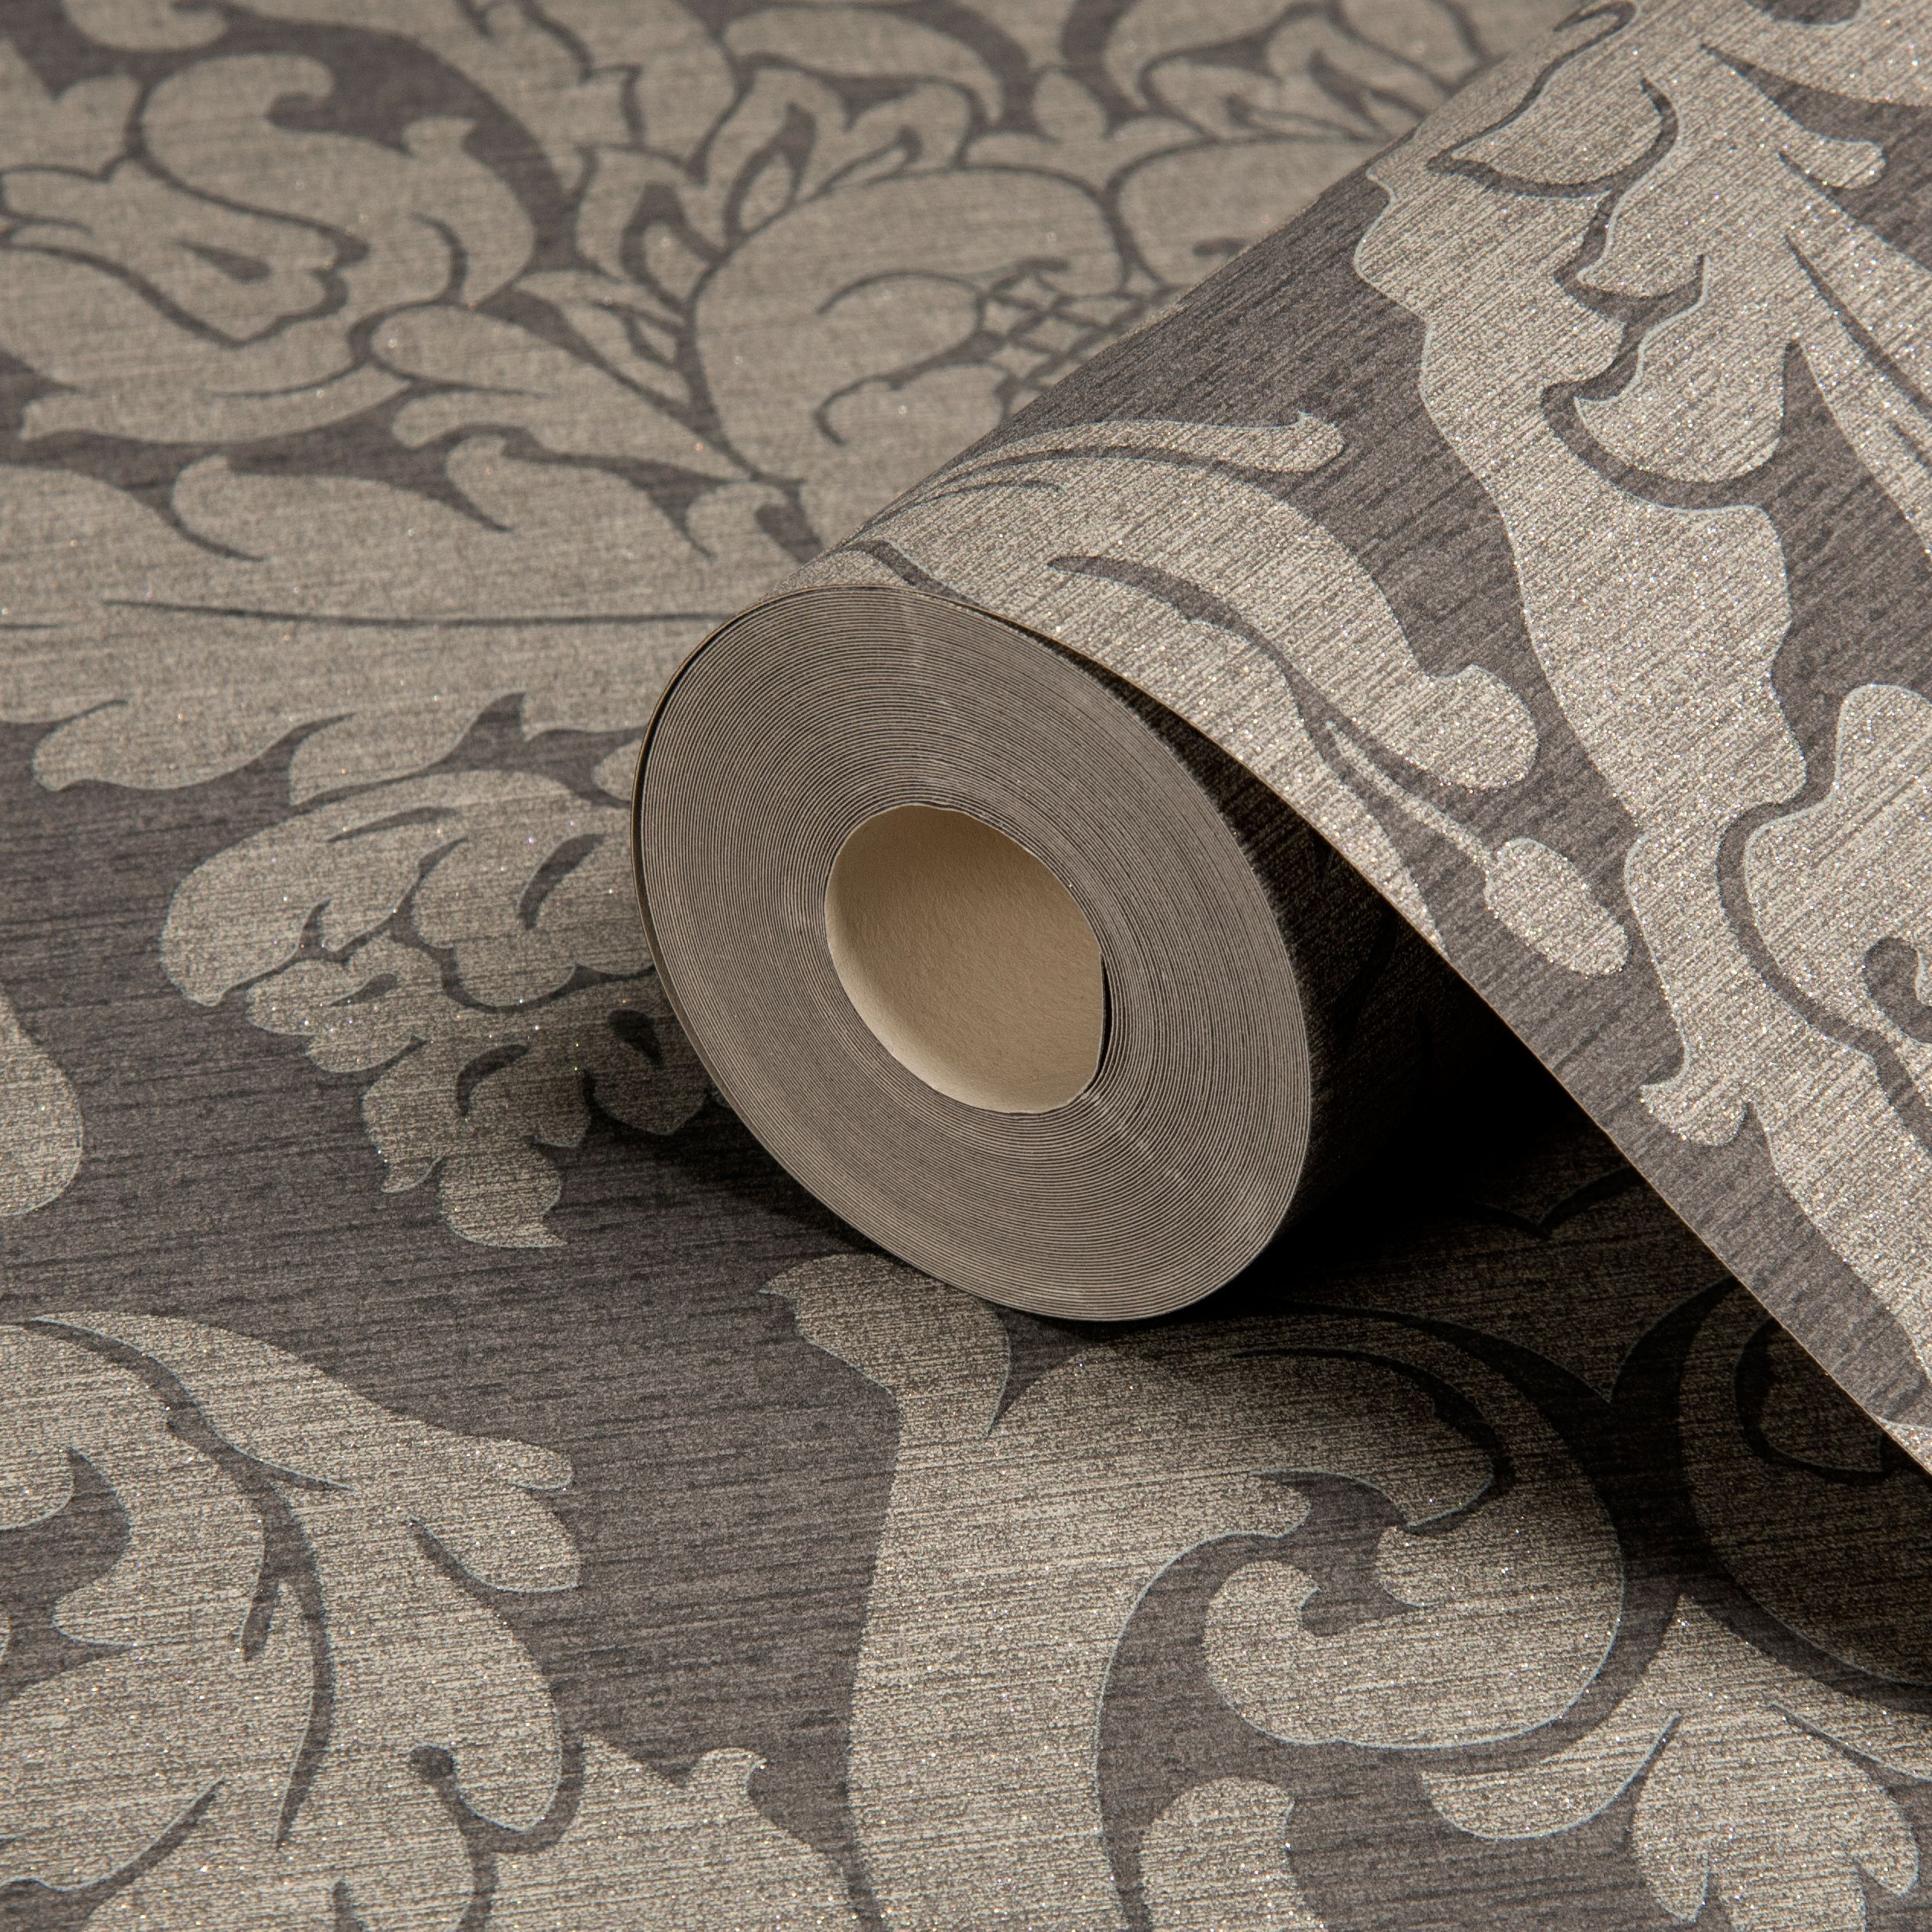 Gold Kensington Charcoal Damask Metallic Wallpaper B Q For All Your Home And Garden Supplies And Advice Damask Wallpaper Gold Effect Wallpaper Gold Wallpaper